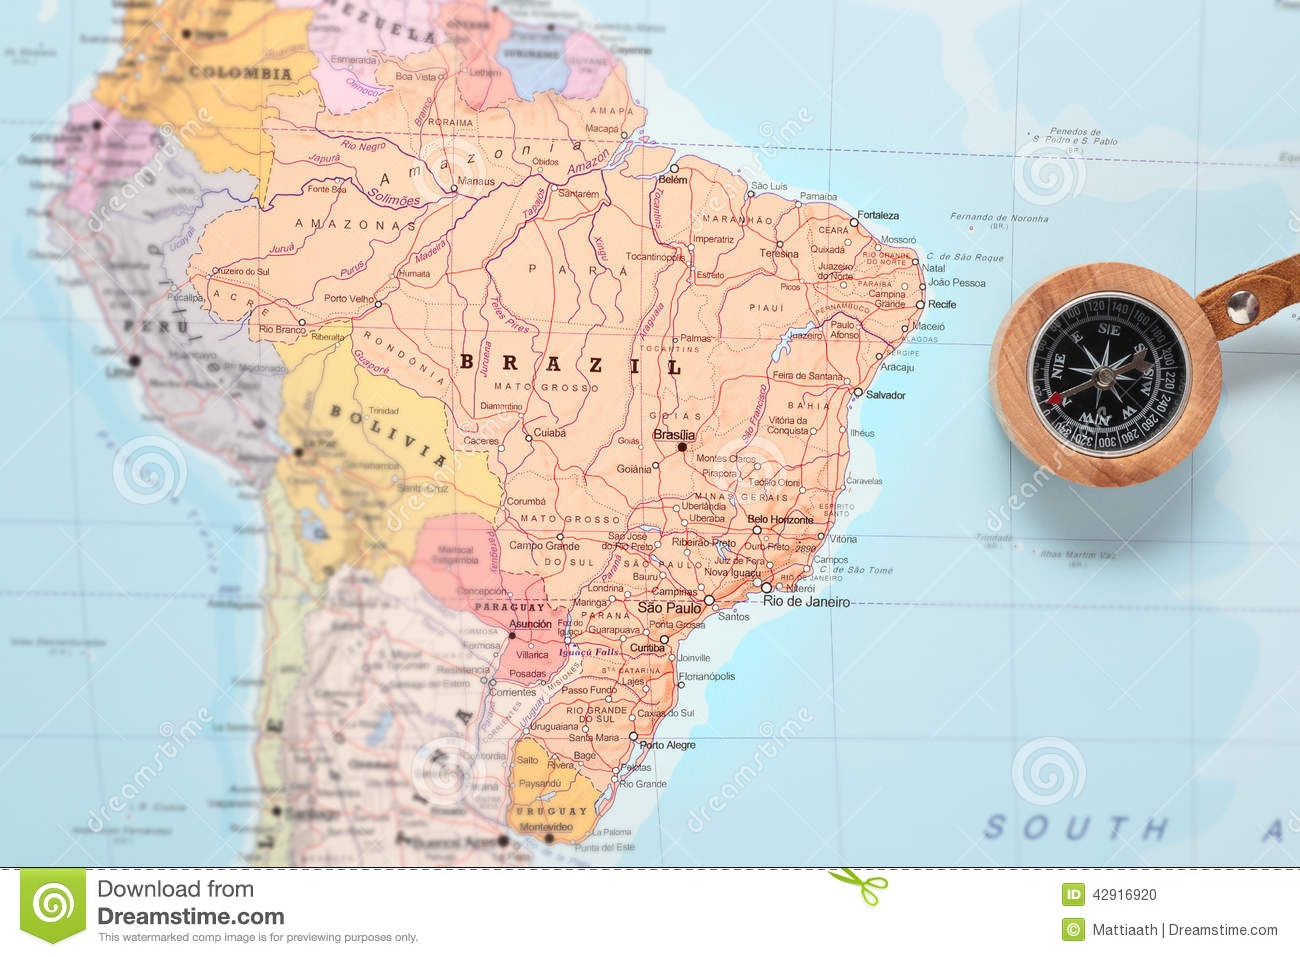 America Map With Compass.Travel Destination Brazil Map With Compass Stock Photo Image Of